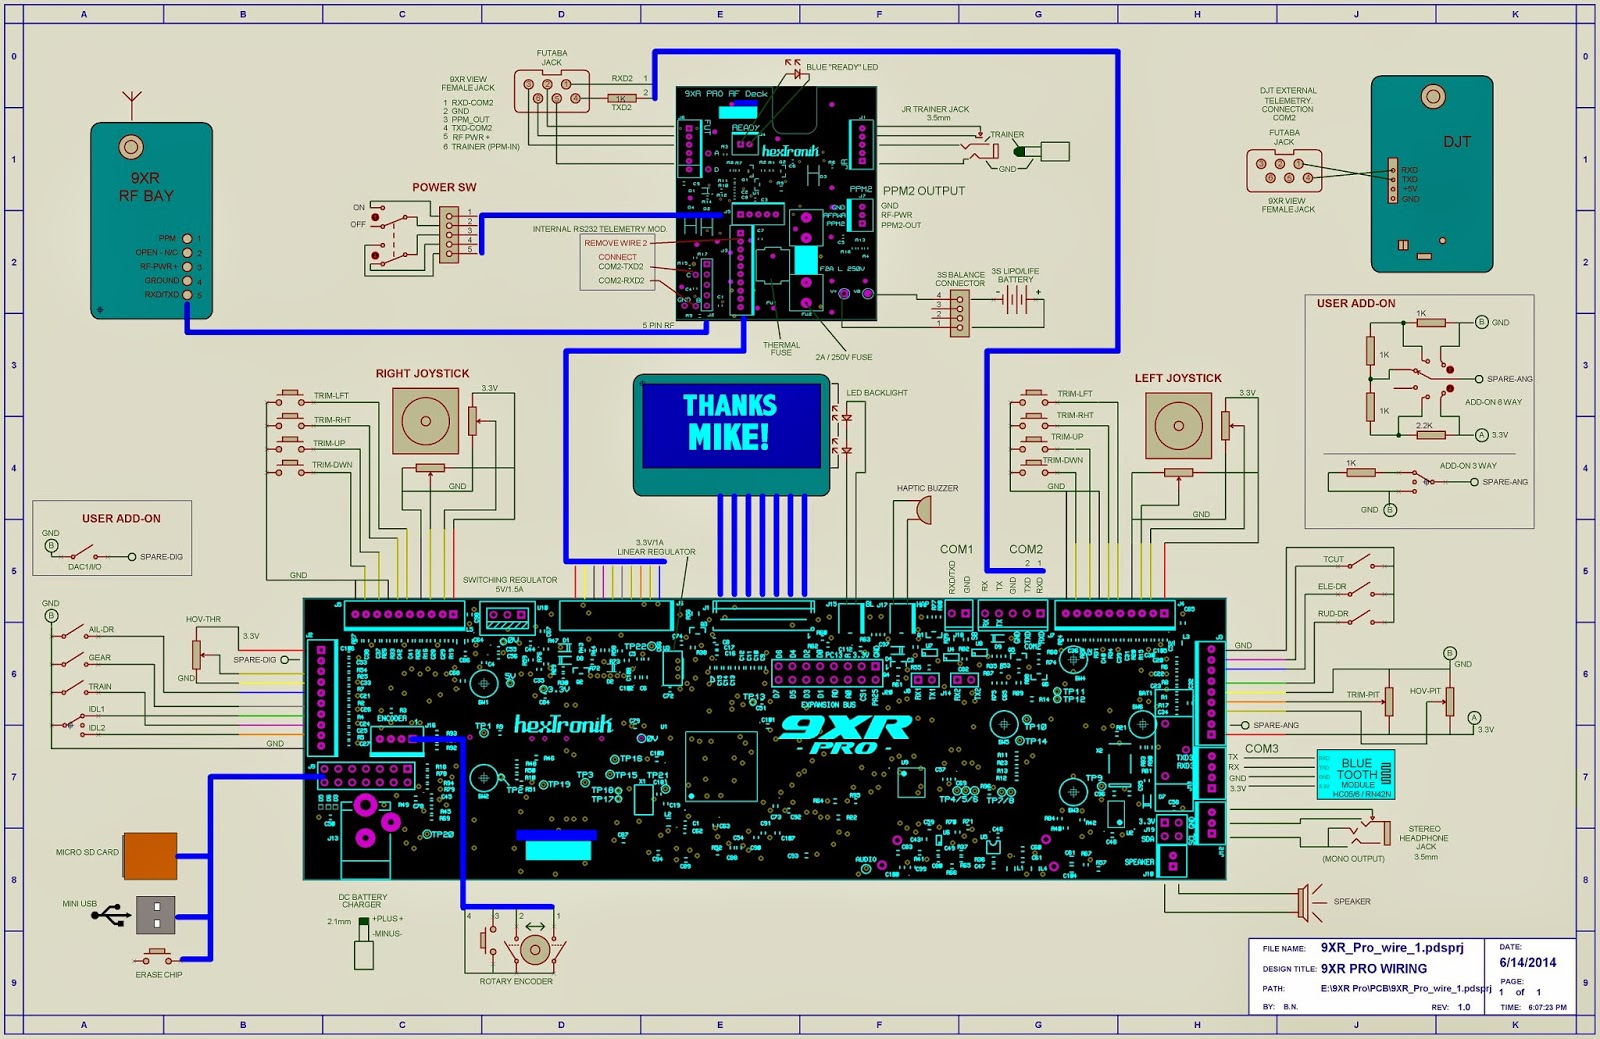 hight resolution of 9xr pro wiring diagram